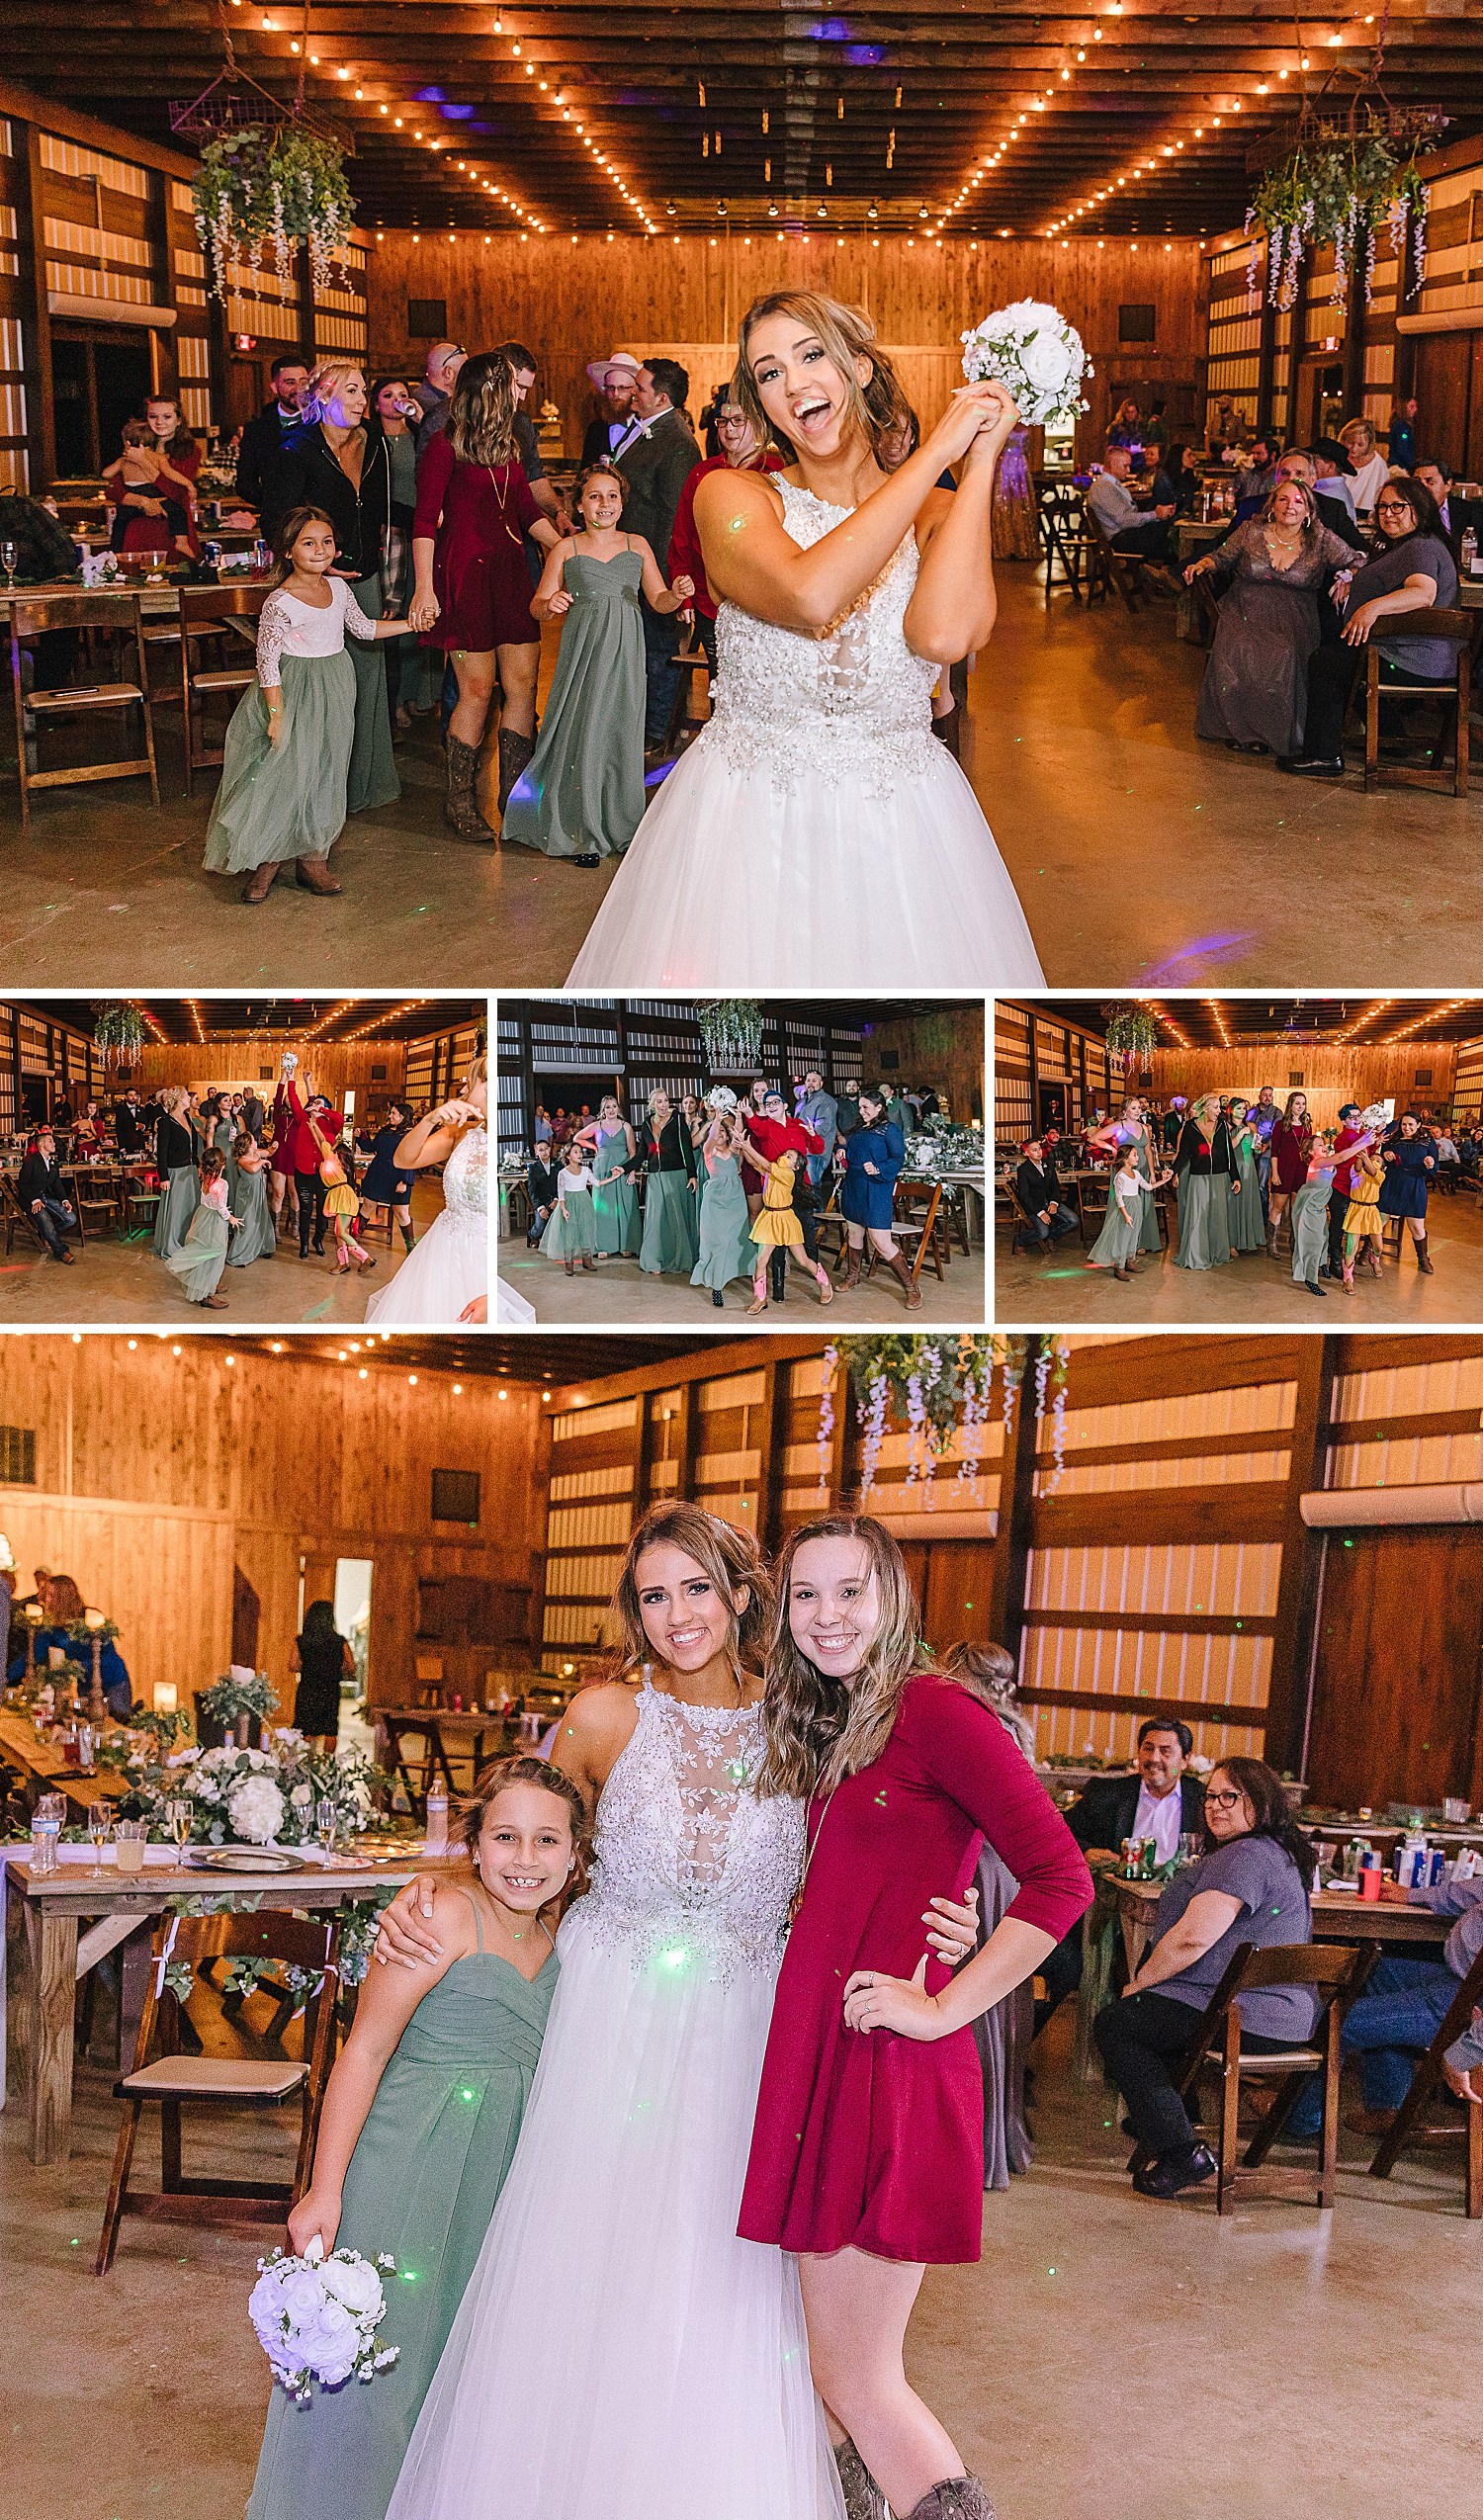 Allen-Farmhaus-New-Braunfels-Wedding-Carly-Barton-Photography_0096.jpg